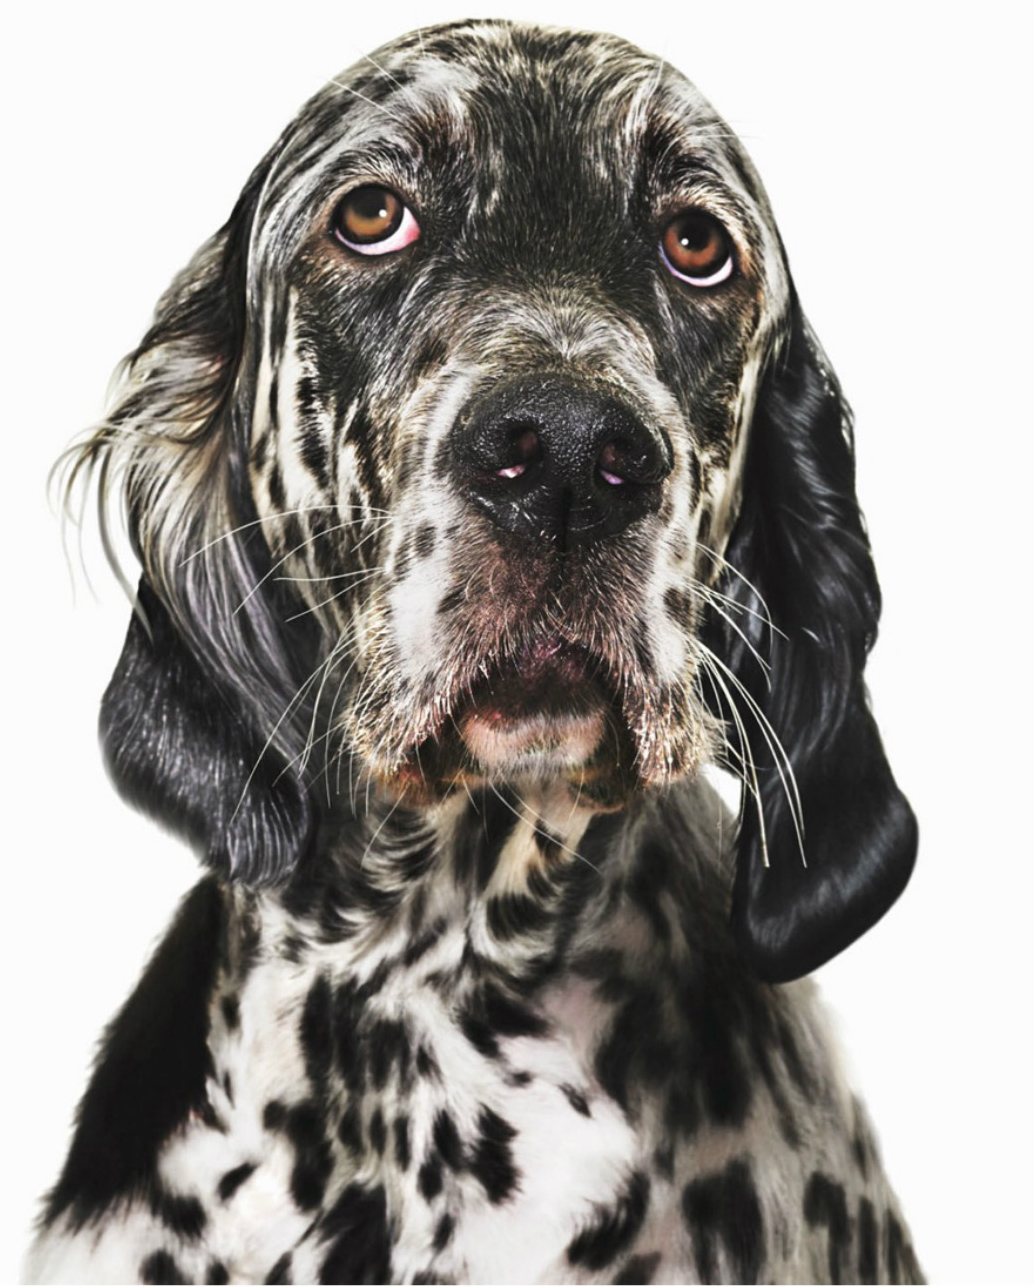 English setter, close-up Copyright GandeeVasanDog100